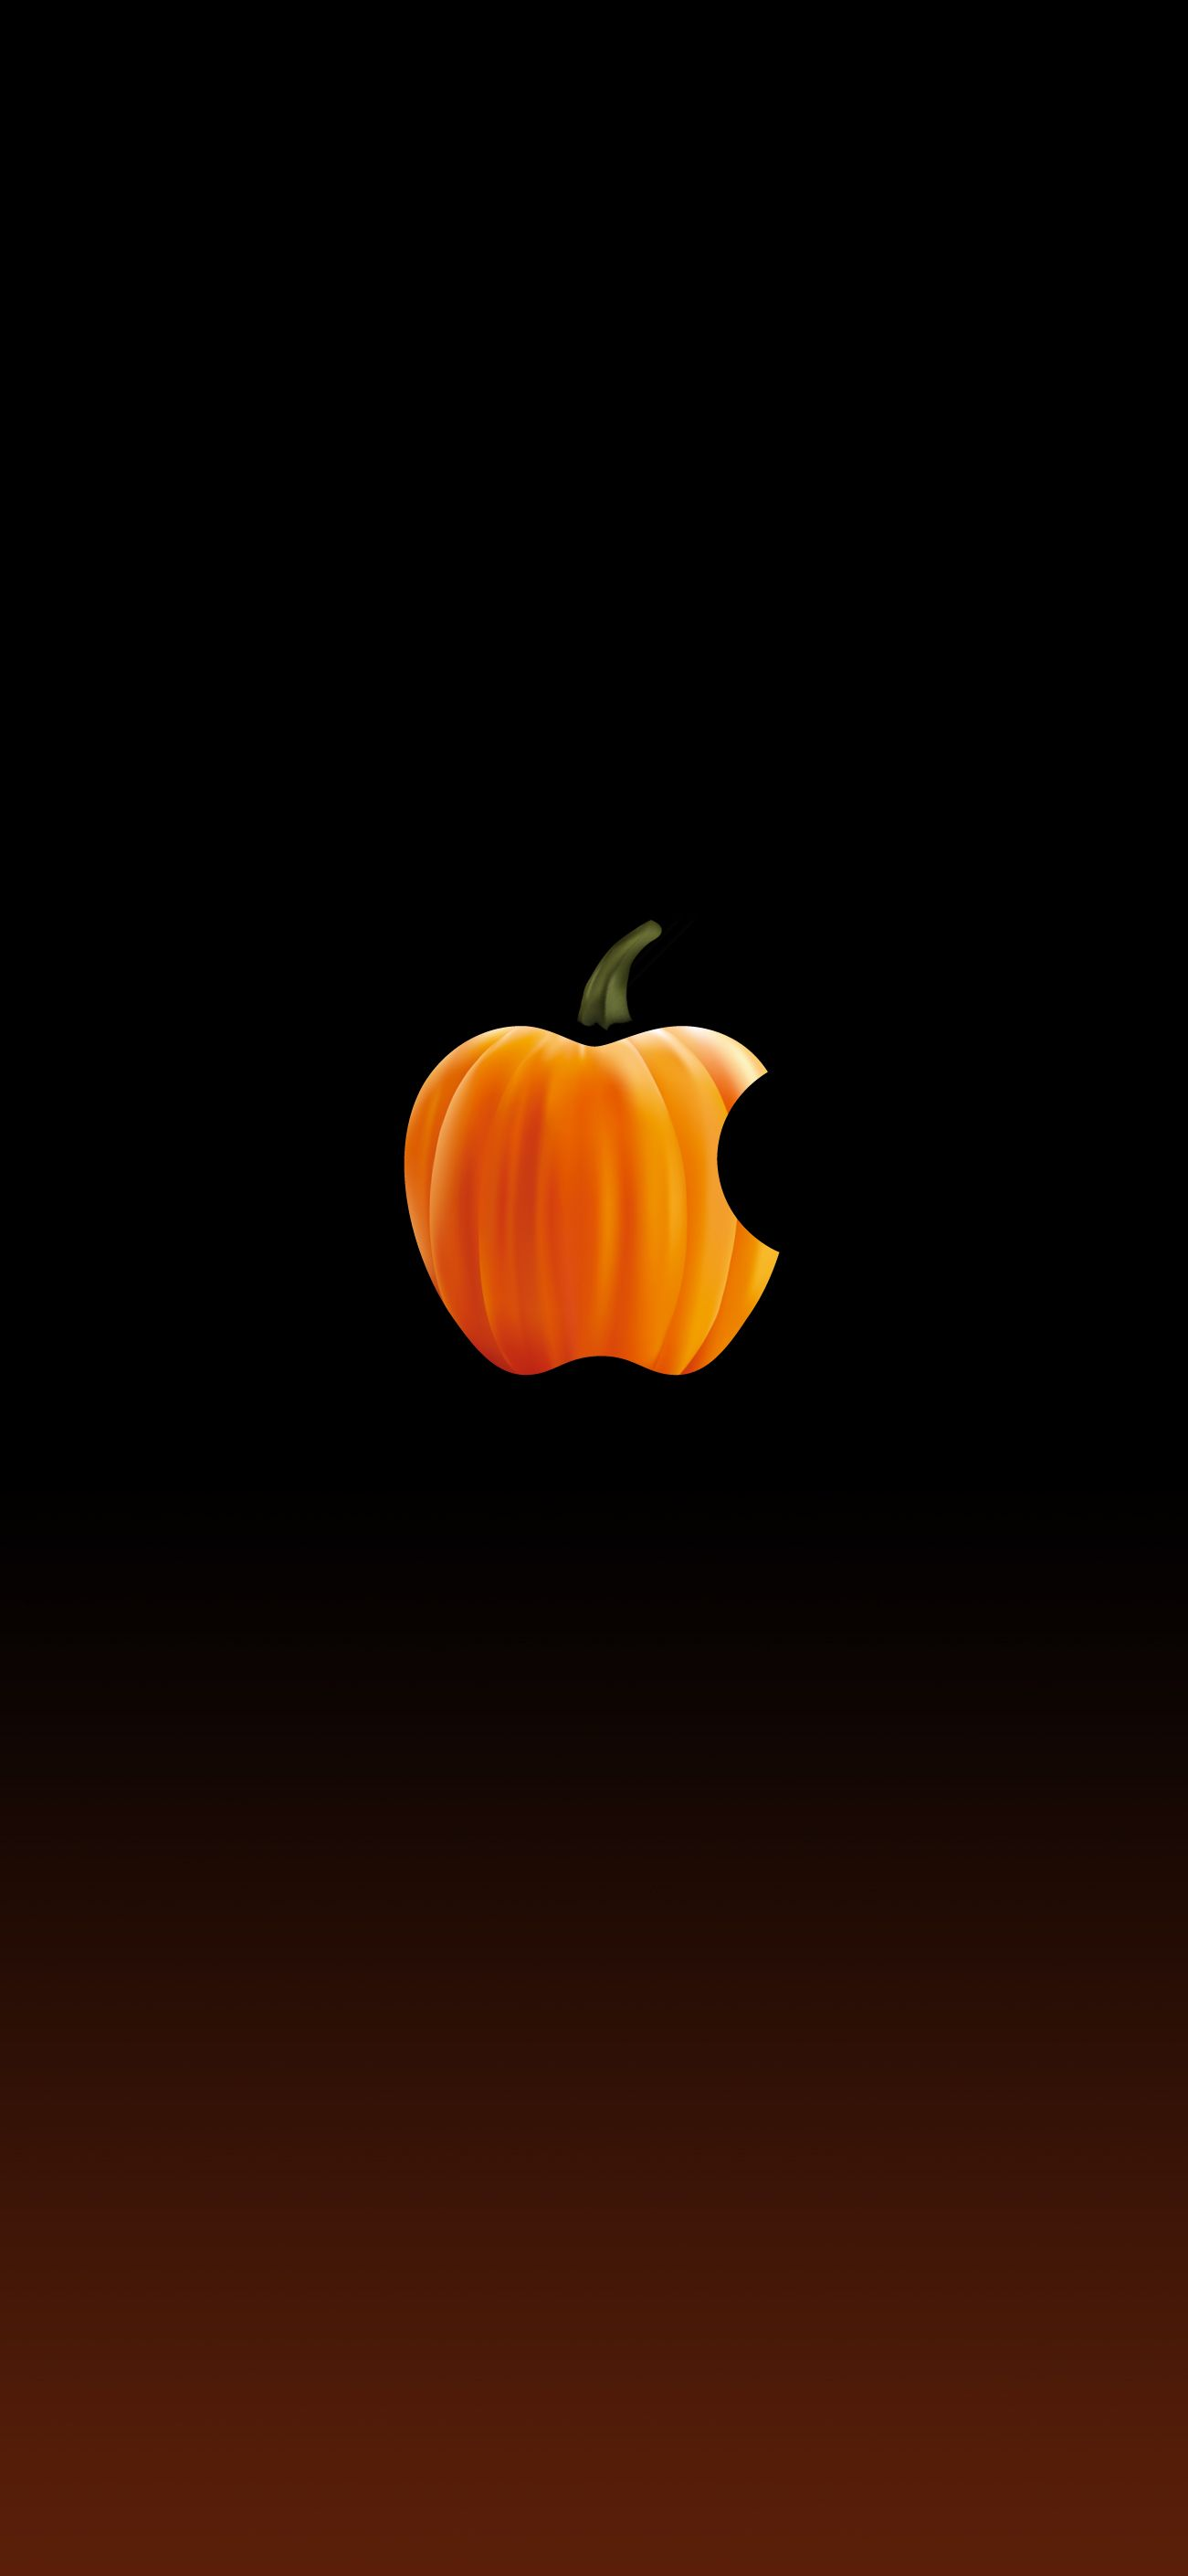 Iphone 11 Halloween Wallpapers Wallpaper Cave